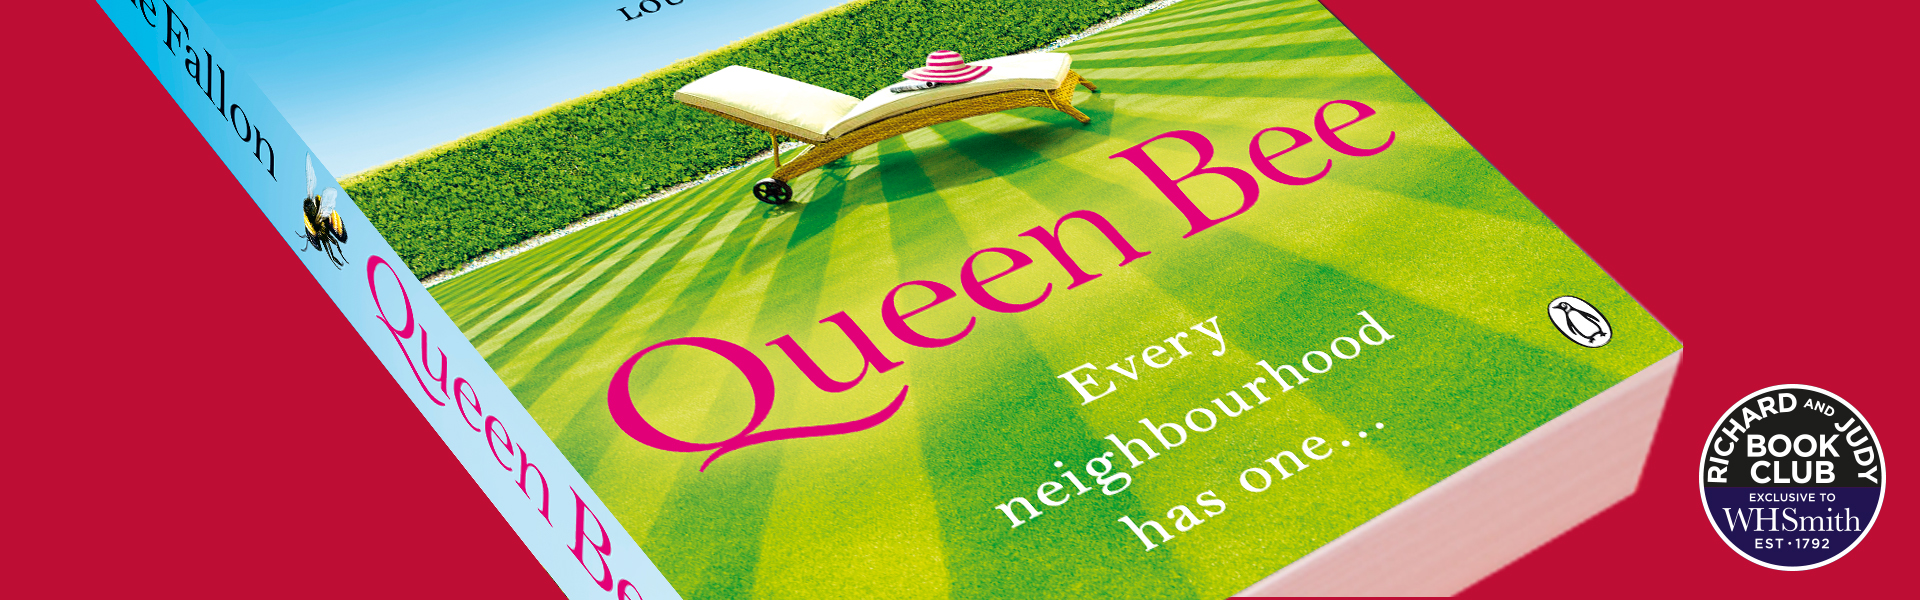 Richard and Judy Introduce Queen Bee by Jane Fallon